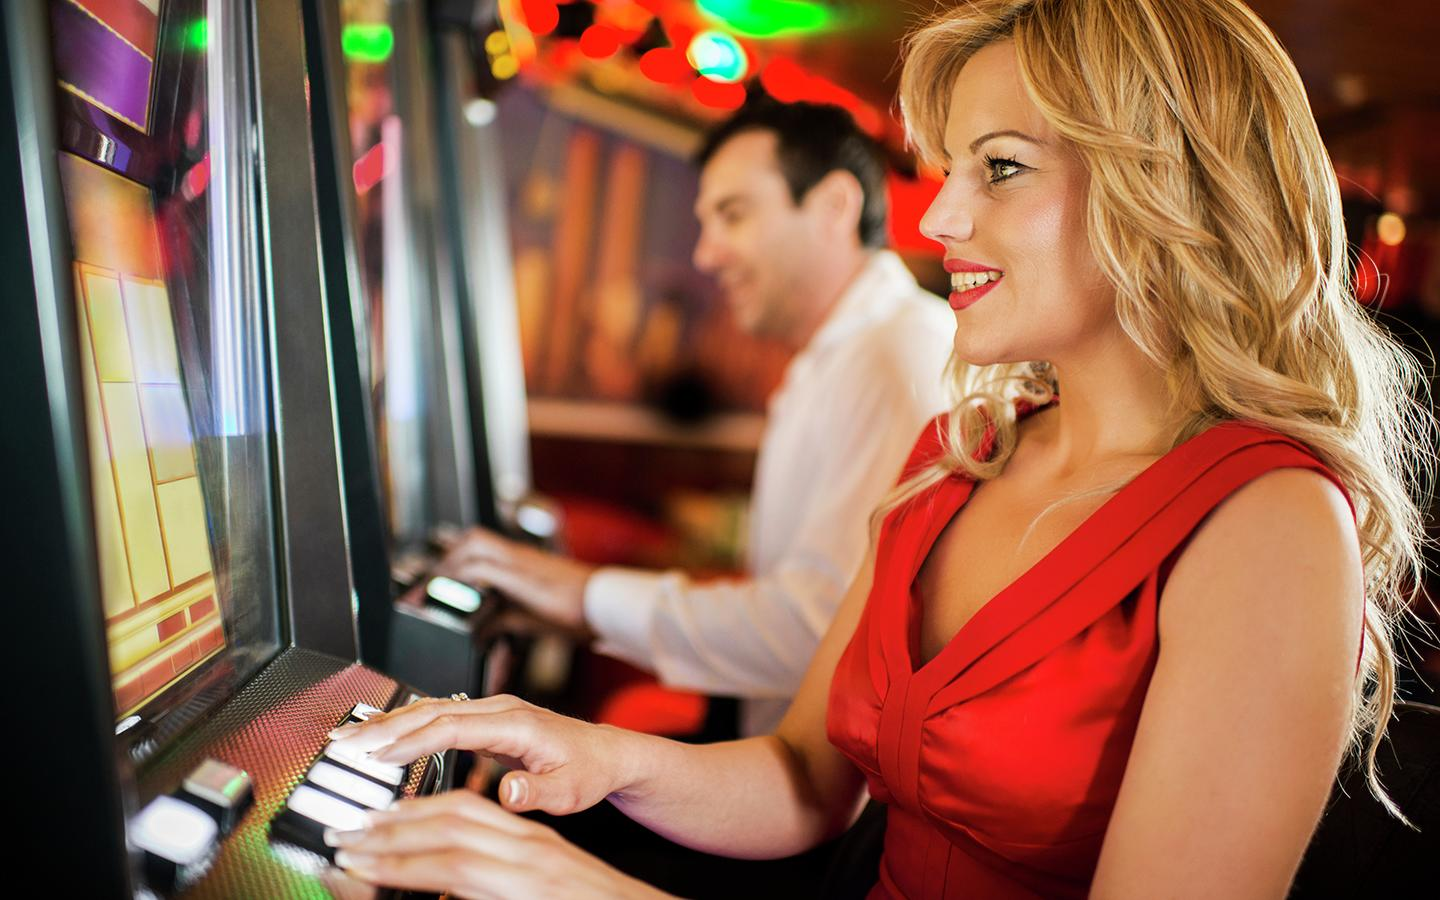 A guide to playing online slots that have proven jackpots